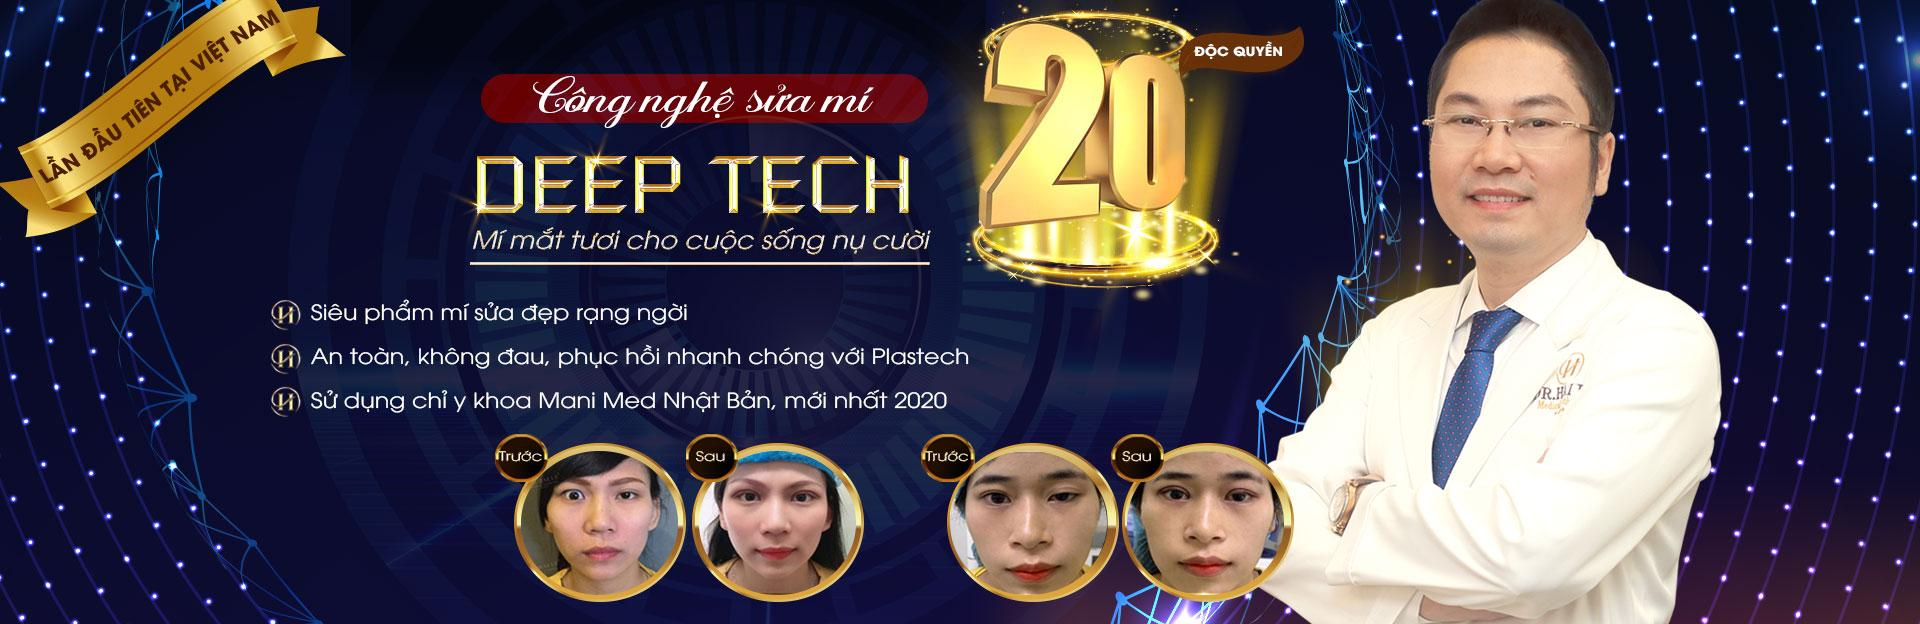 Sửa mí Deep Tech20 pc